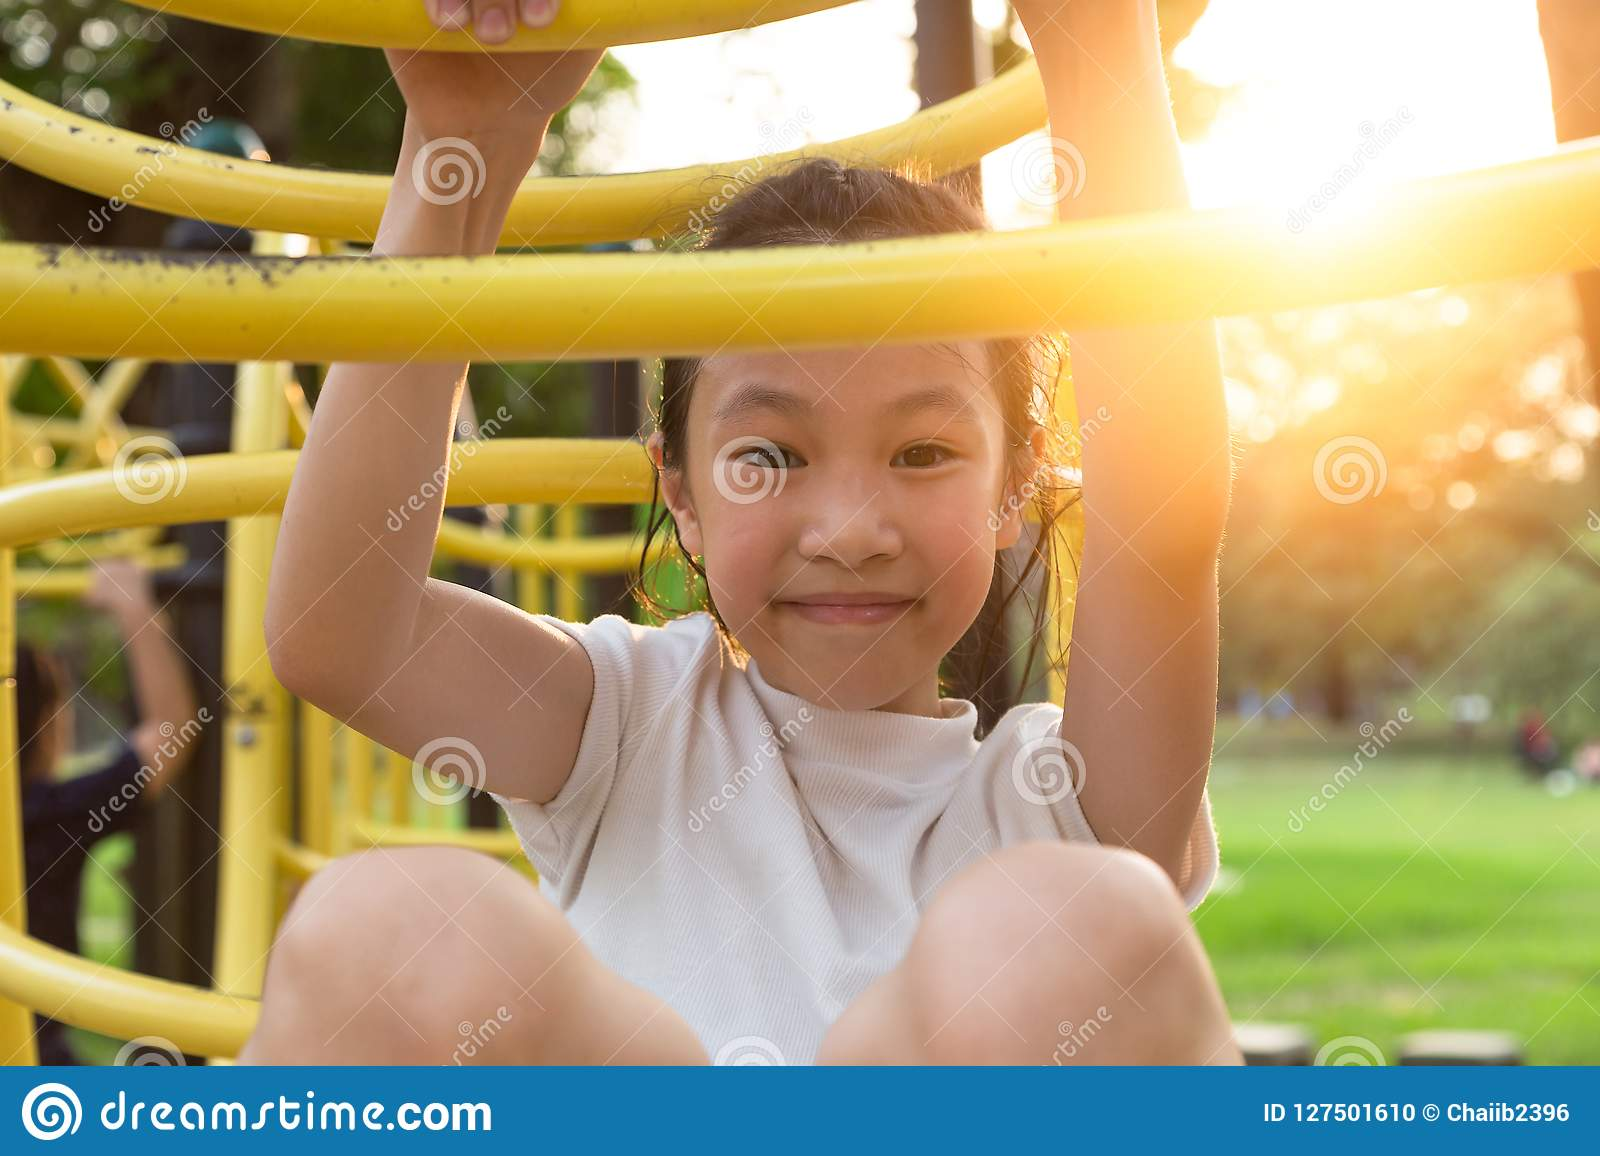 Happy,Asian little girl playing on a playground outdoor and looking at camera in the park,summer,vacation concept